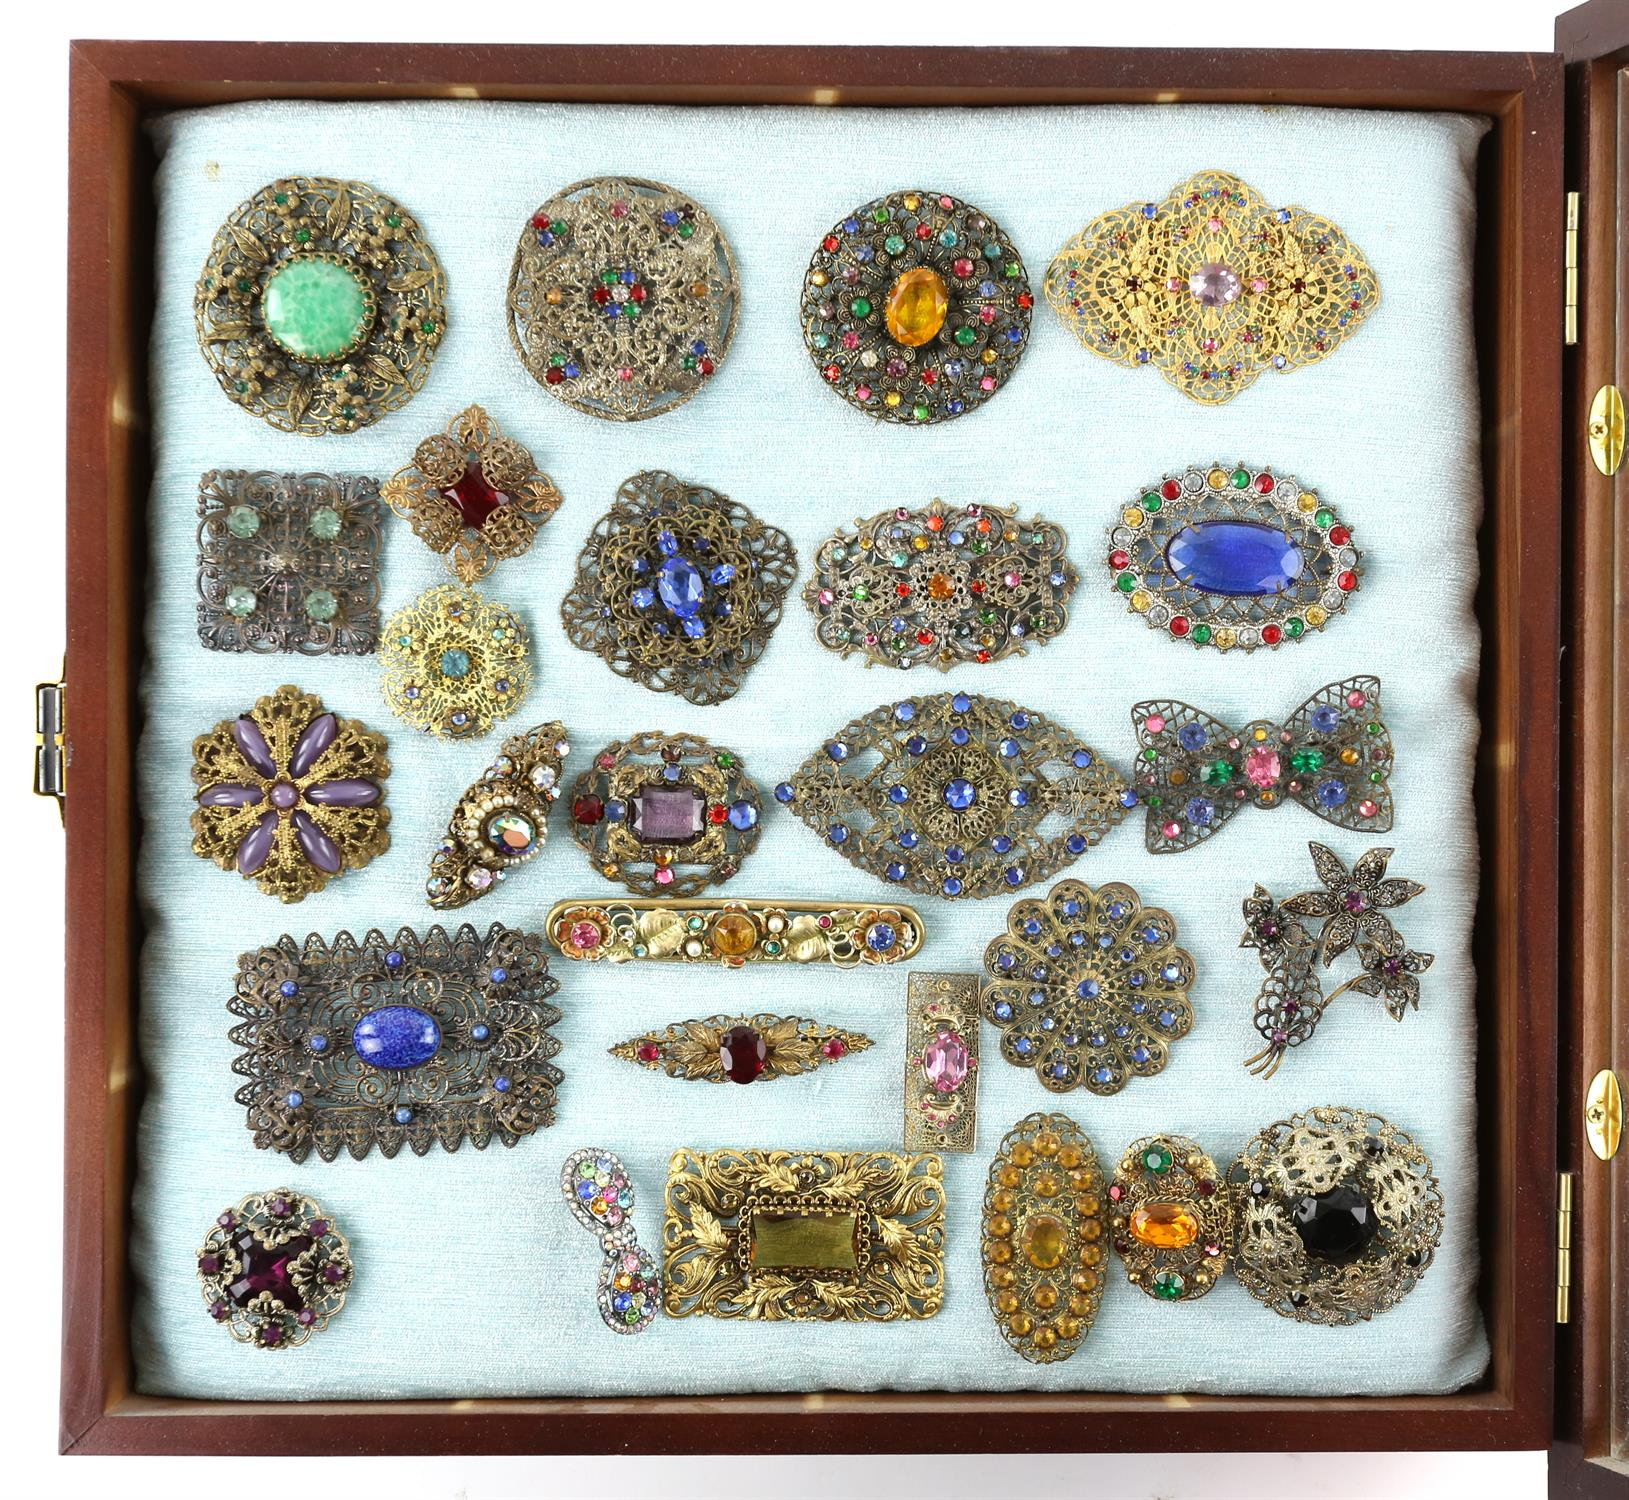 Three frames of brooches, largest frame measuring approximately 82 x 36.5cm, filled with colourful - Image 2 of 4